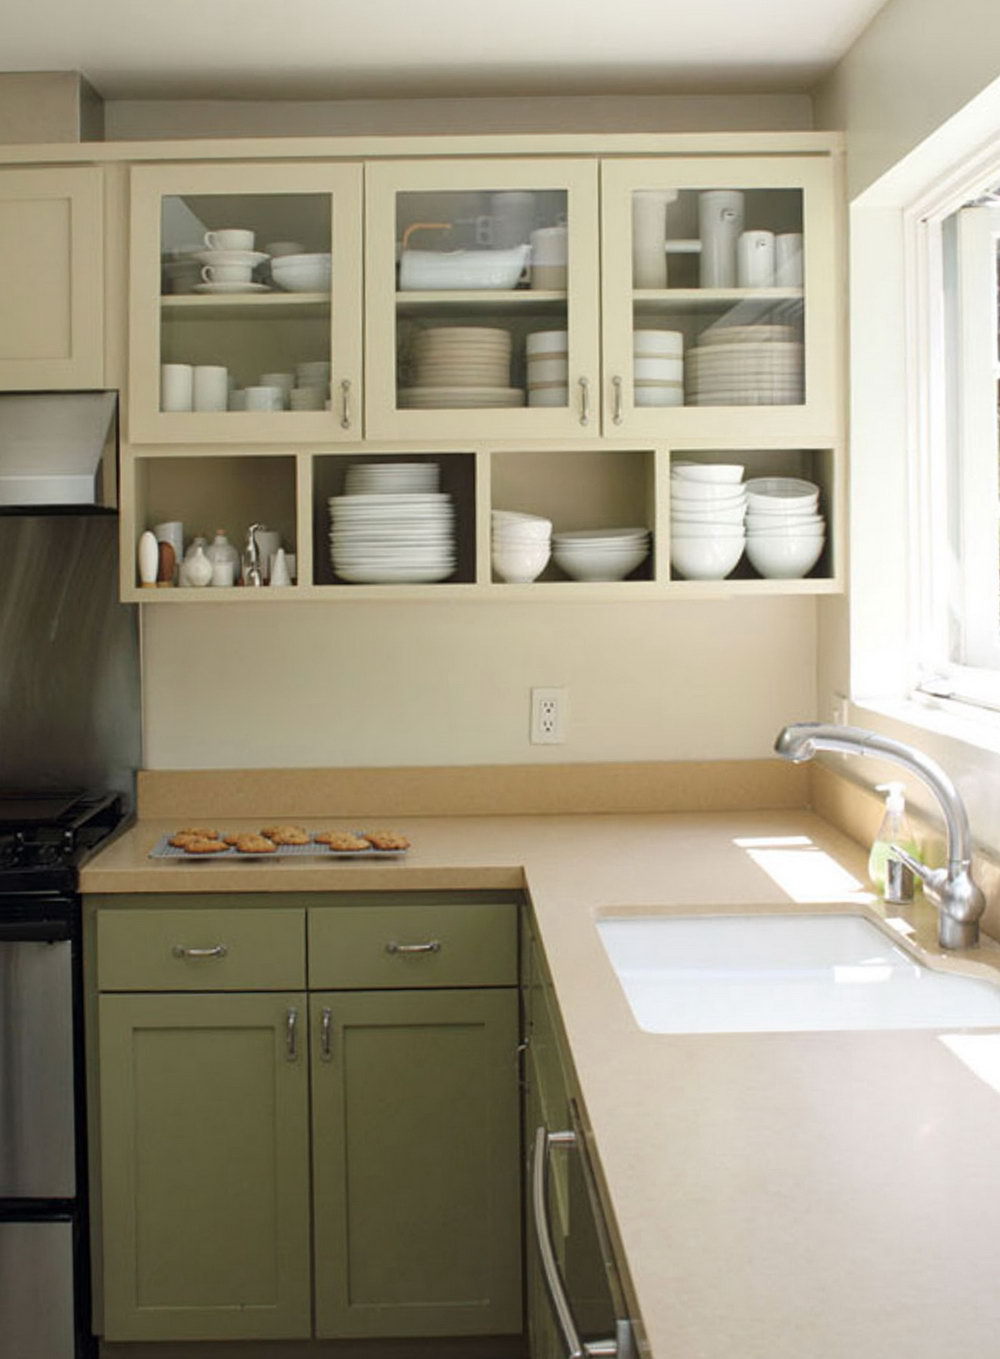 Kitchen With No Bottom Cabinets